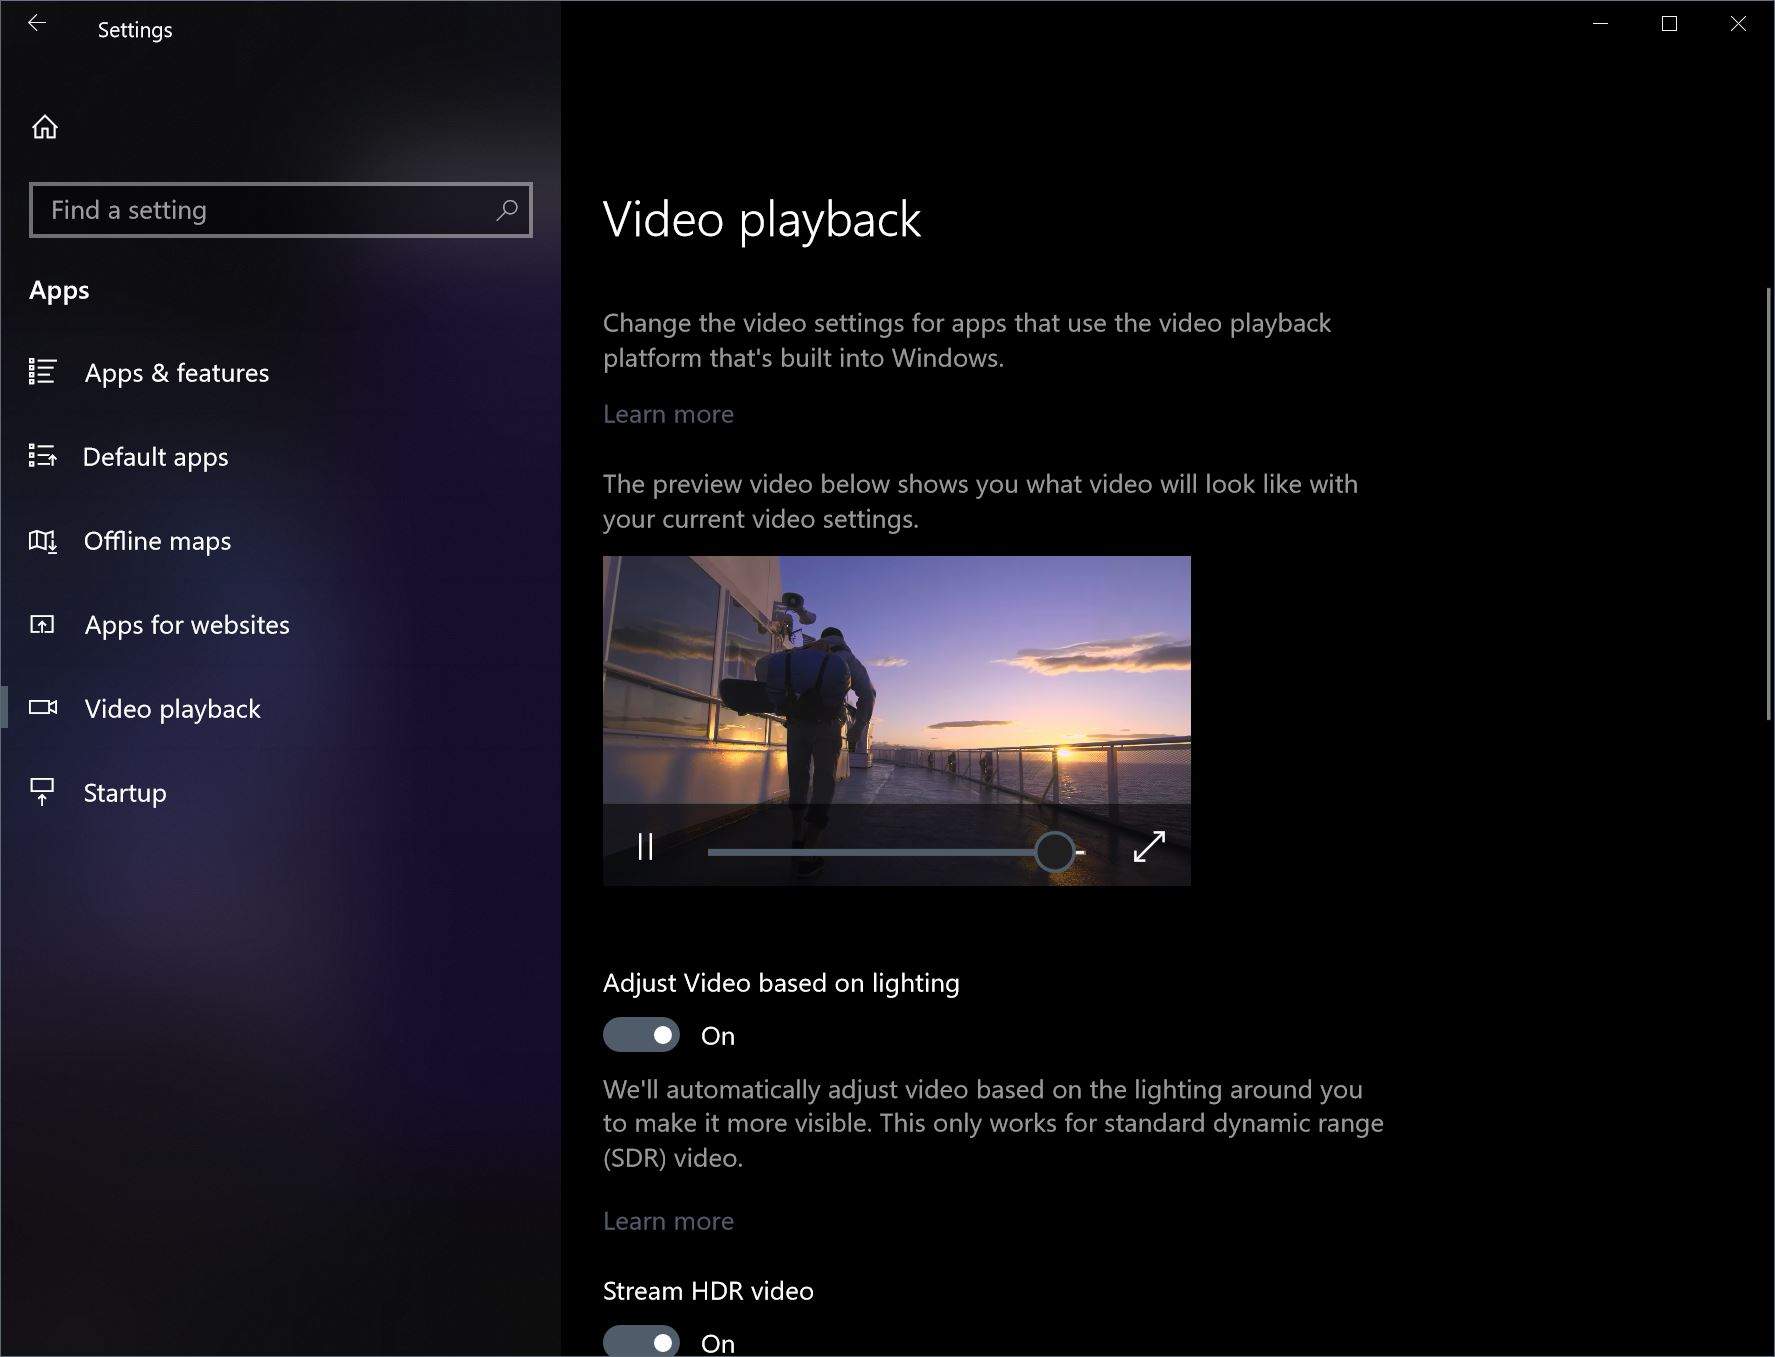 How to activate HDR video on the Windows 10 Spring 2018